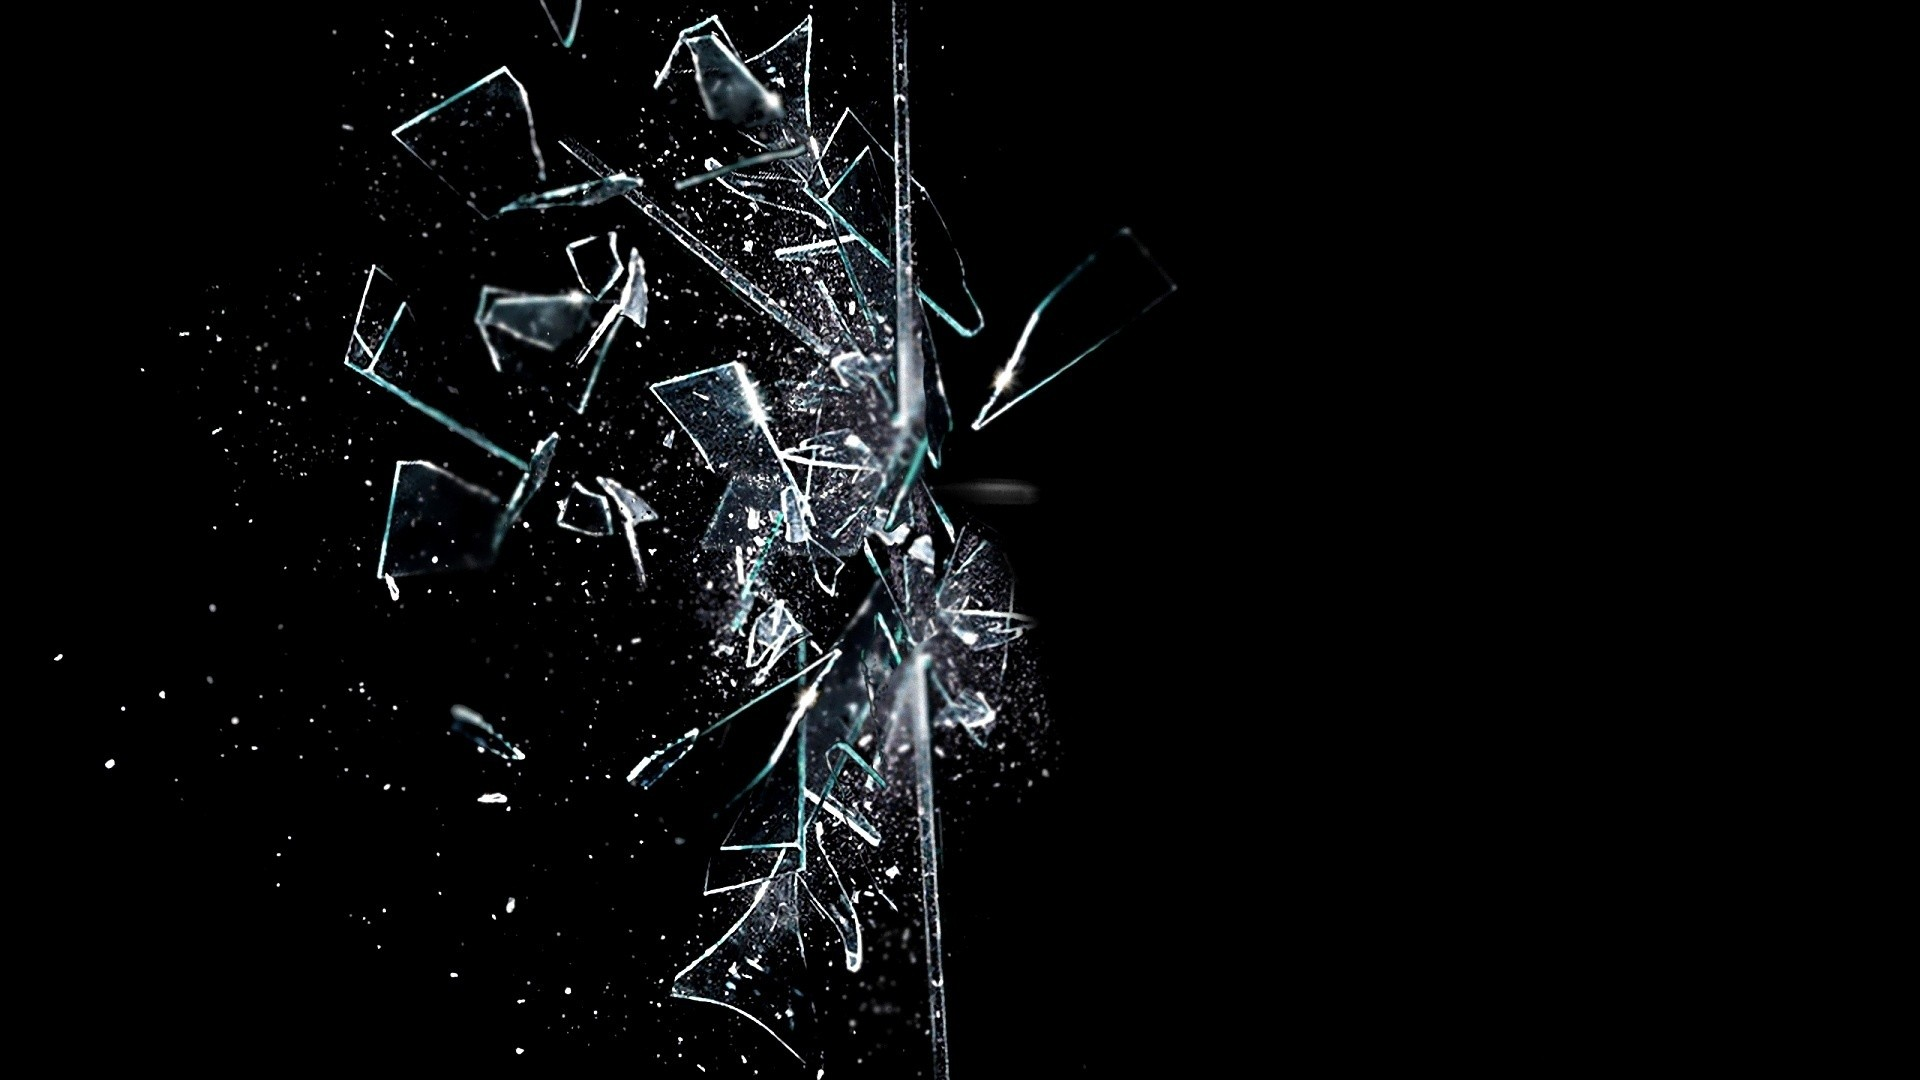 Free Broken Glass Wallpaper